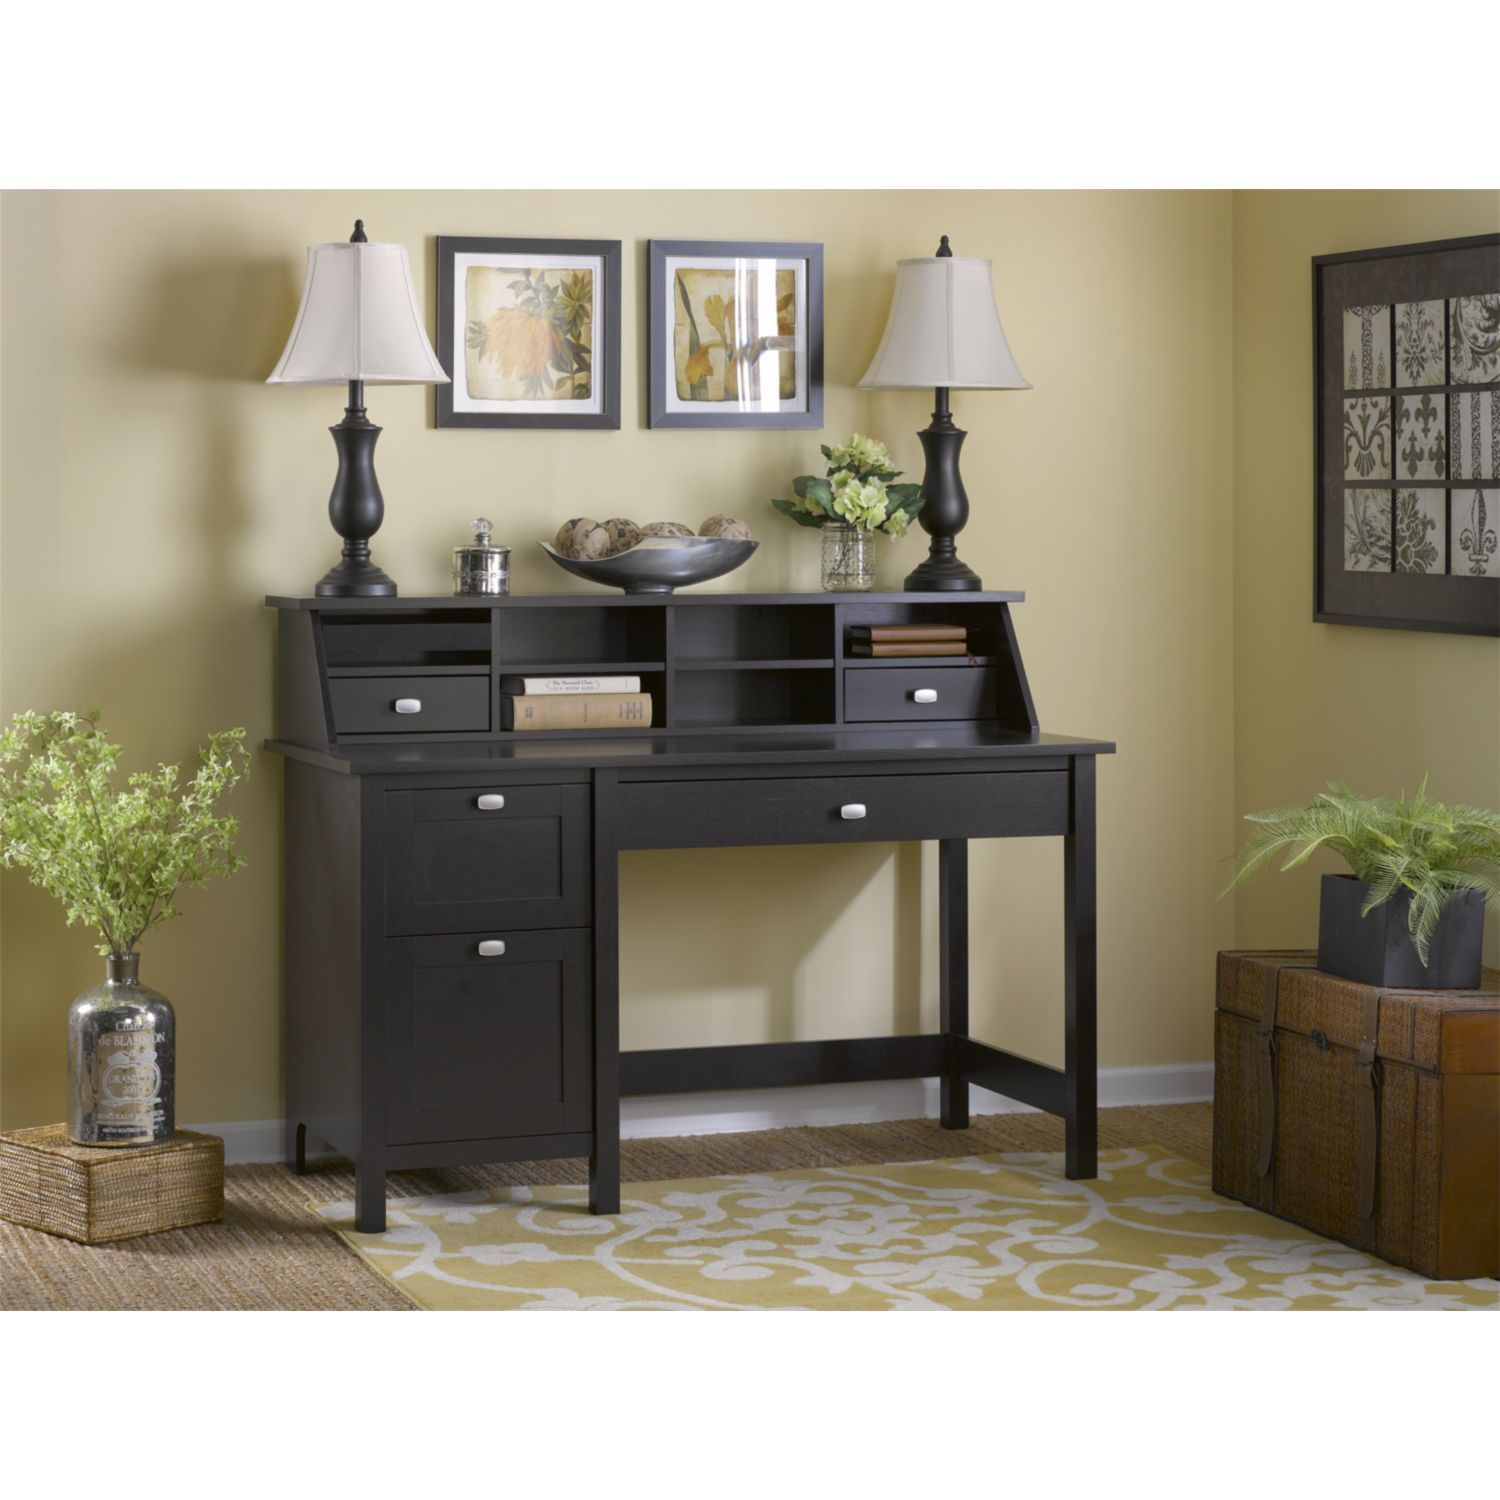 furniture single pedestal products oak ped portland painted stone desk